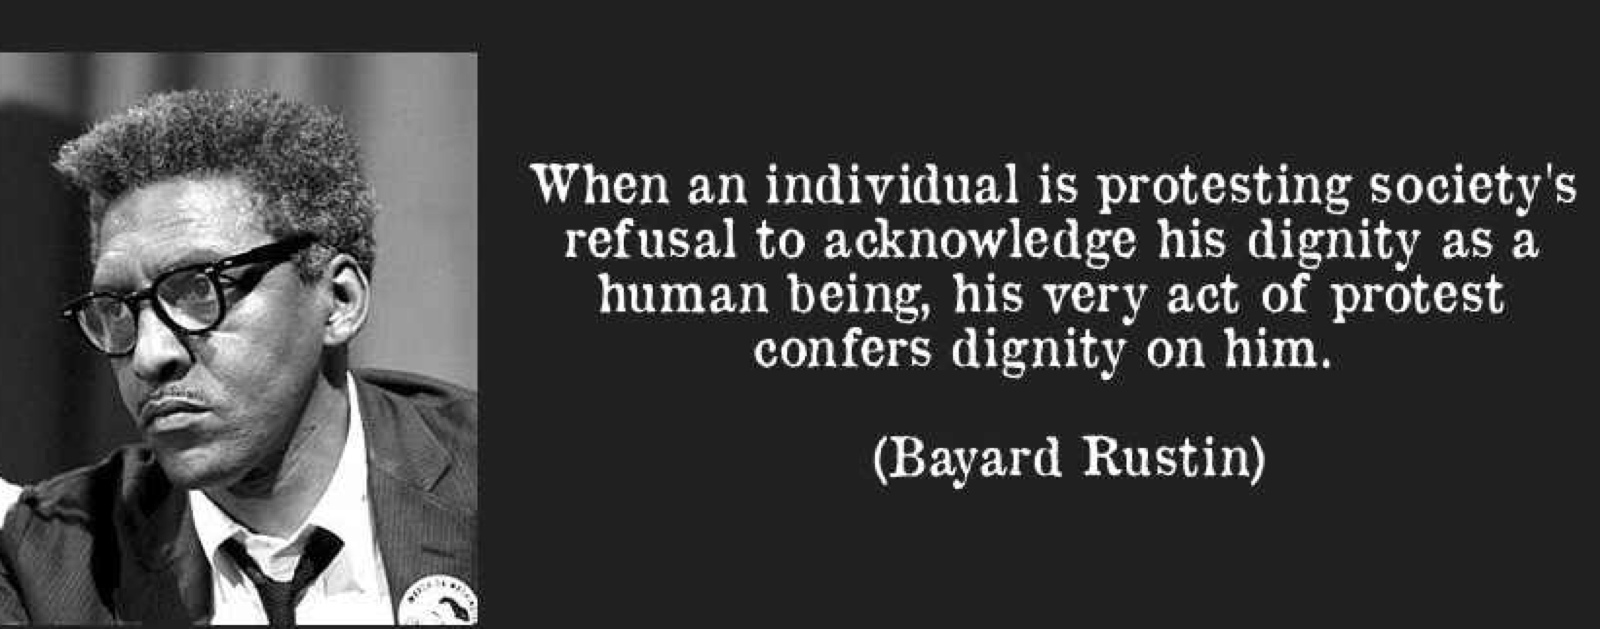 March, Bayard Rustin, quote-when-an-individual-is-protesting-society-s-refusal-to-acknowledge-his-dignity-as-a-human-being-his-bayard-rustin-160644